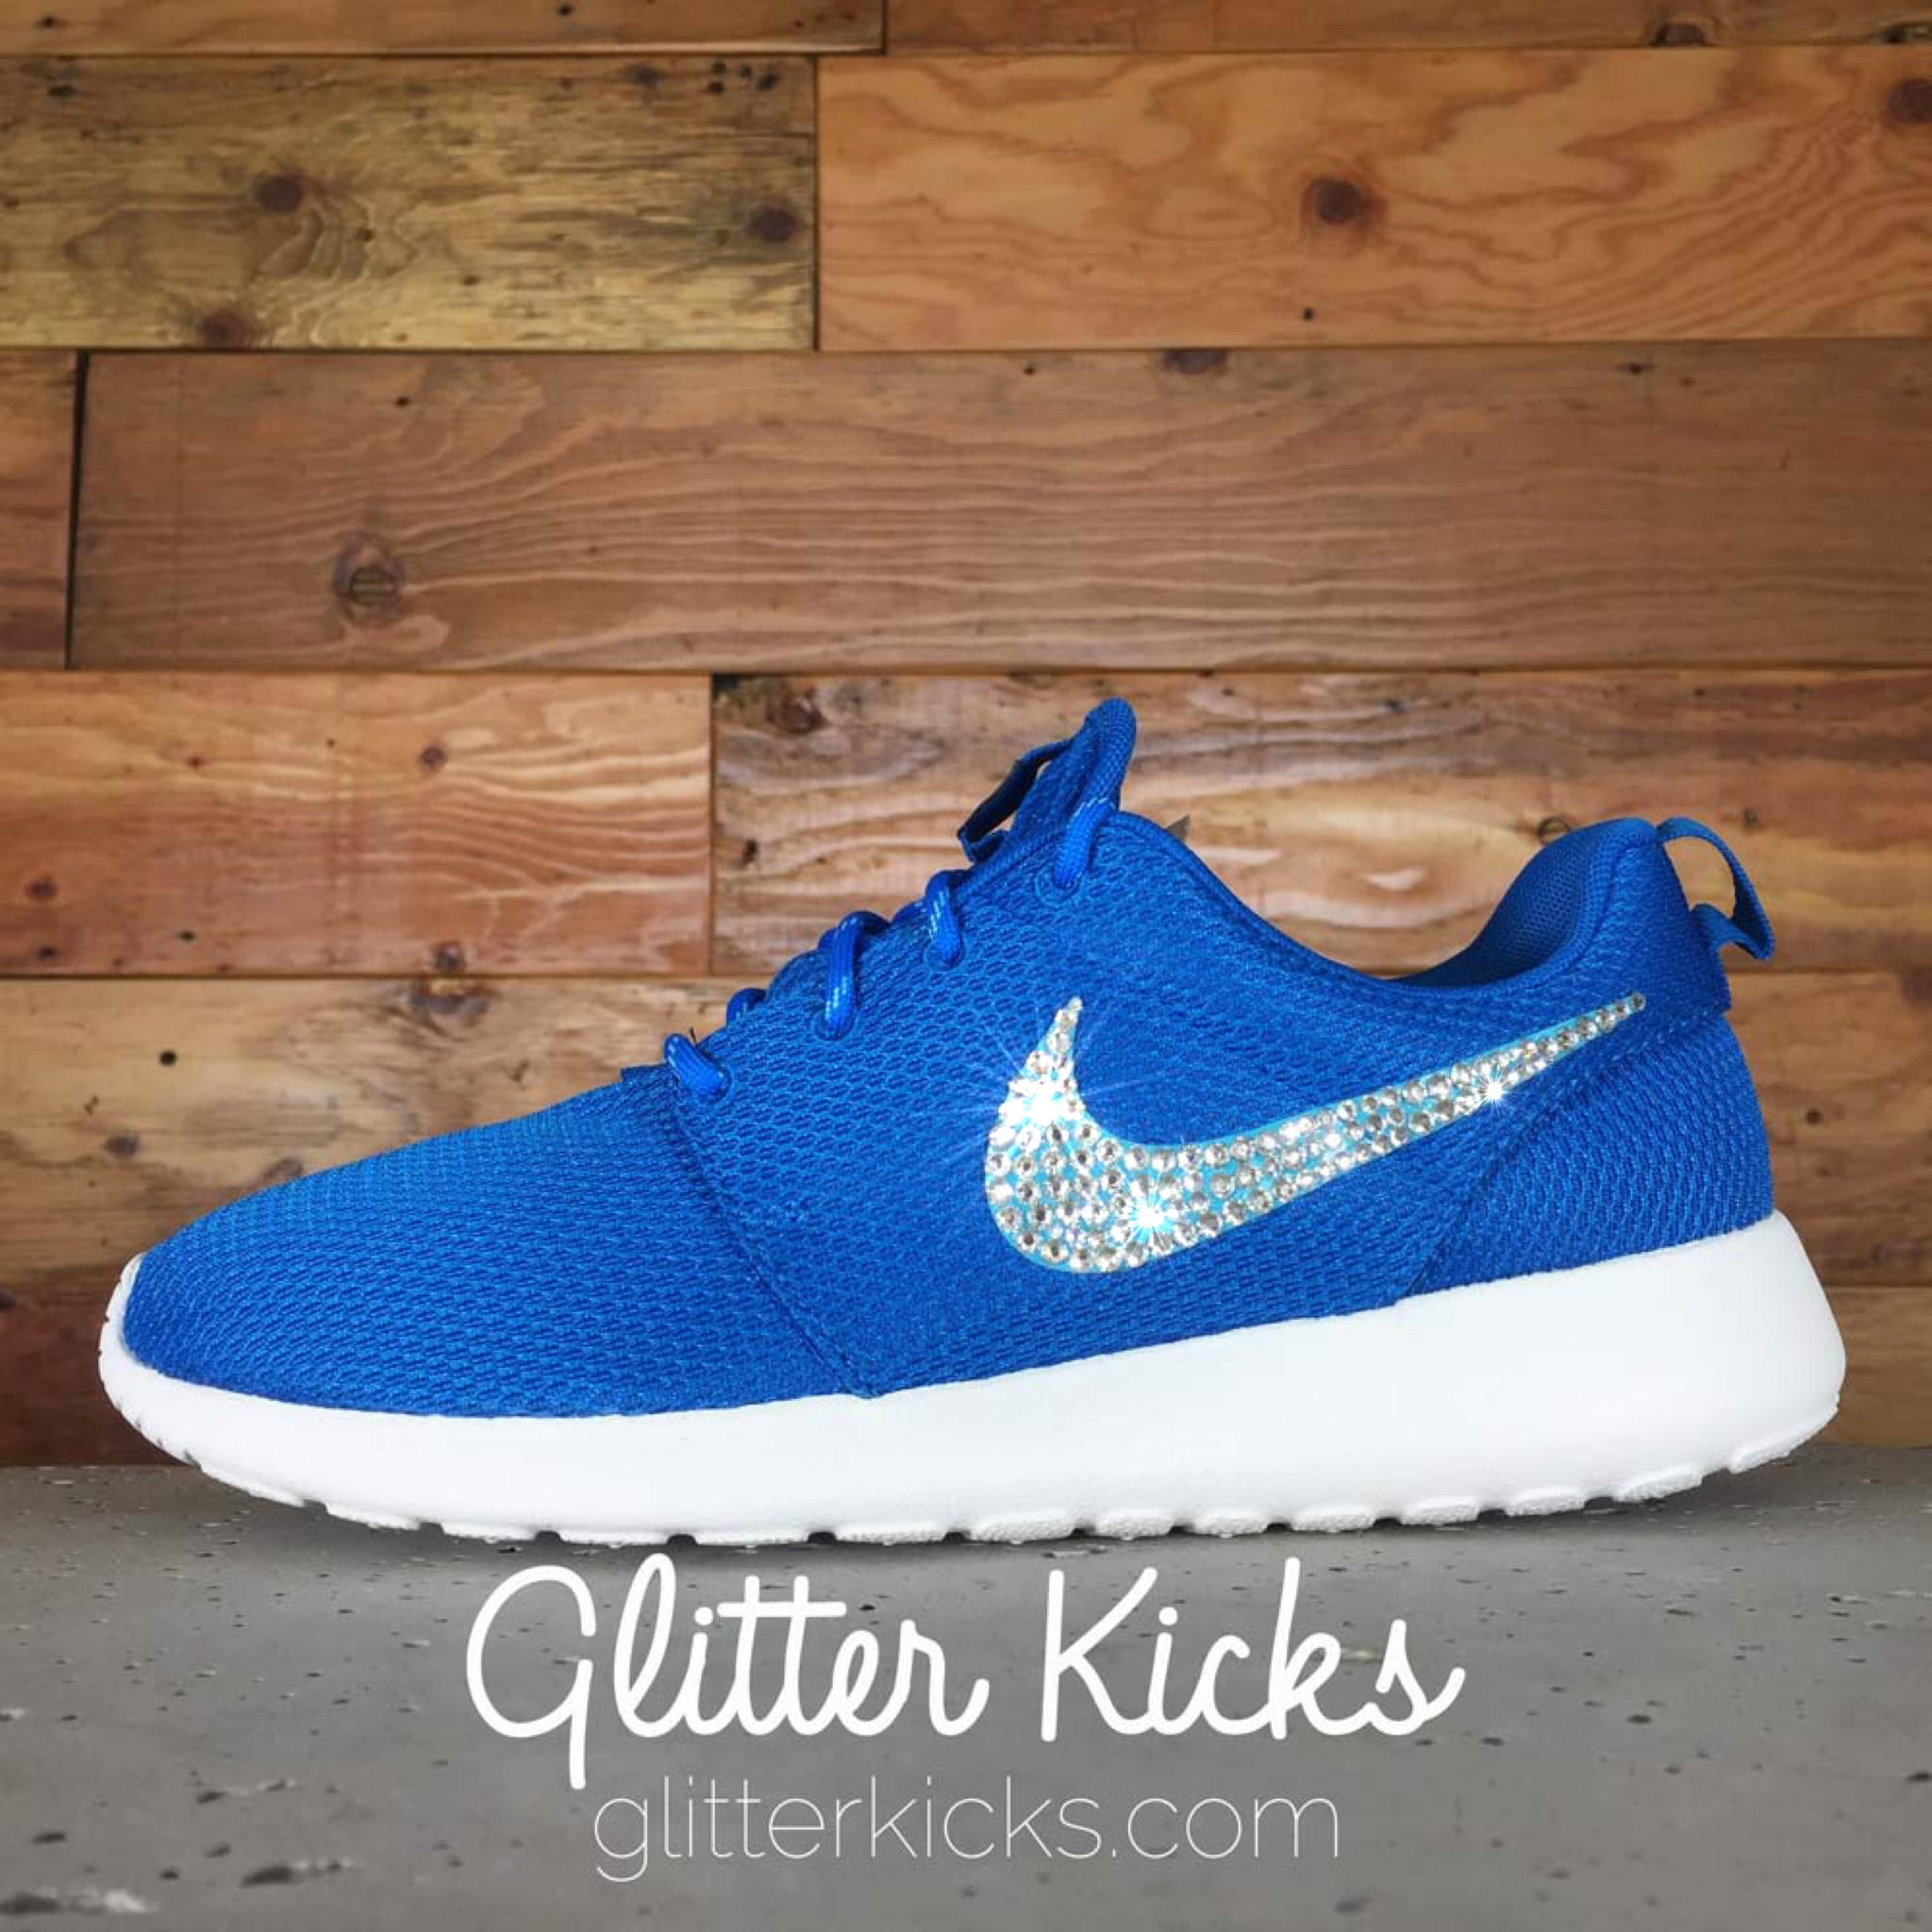 Nike Roshe One Customized by Glitter from Glitter Kicks  11073f971